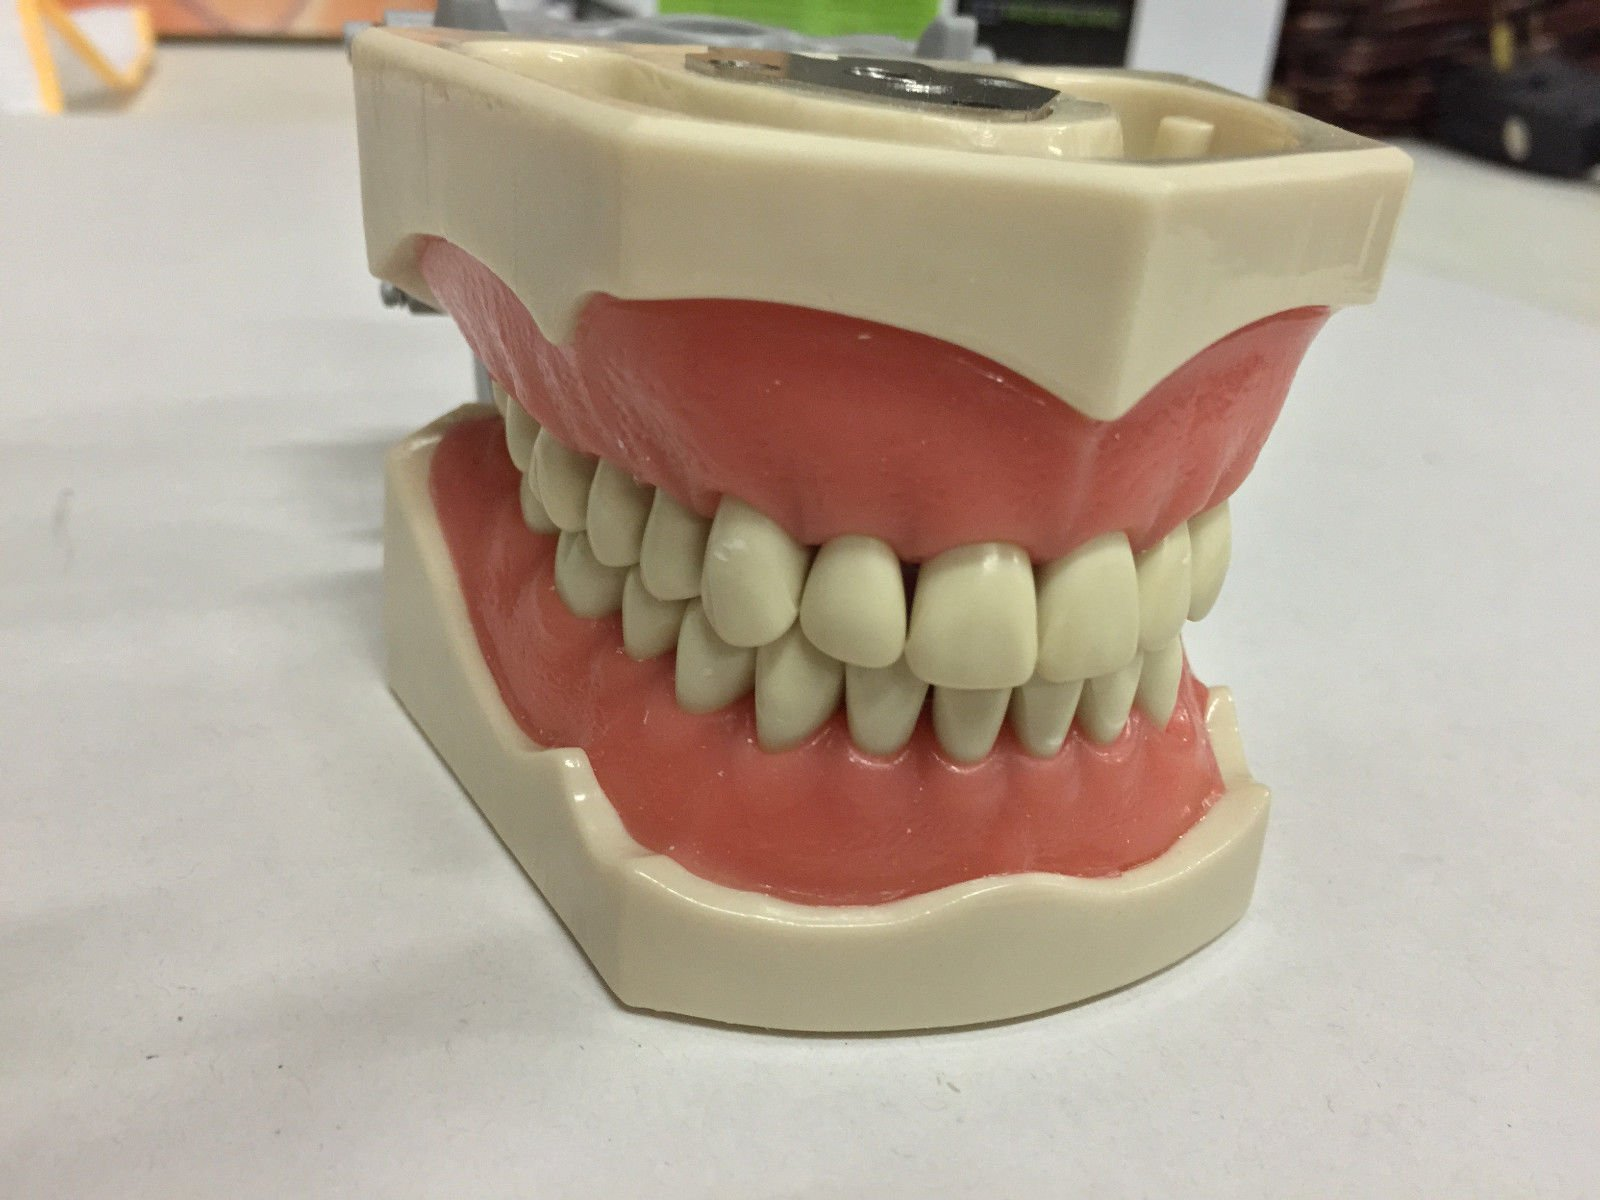 Dental Anatomy Typodont Educational Model 860 with Removable Teeth